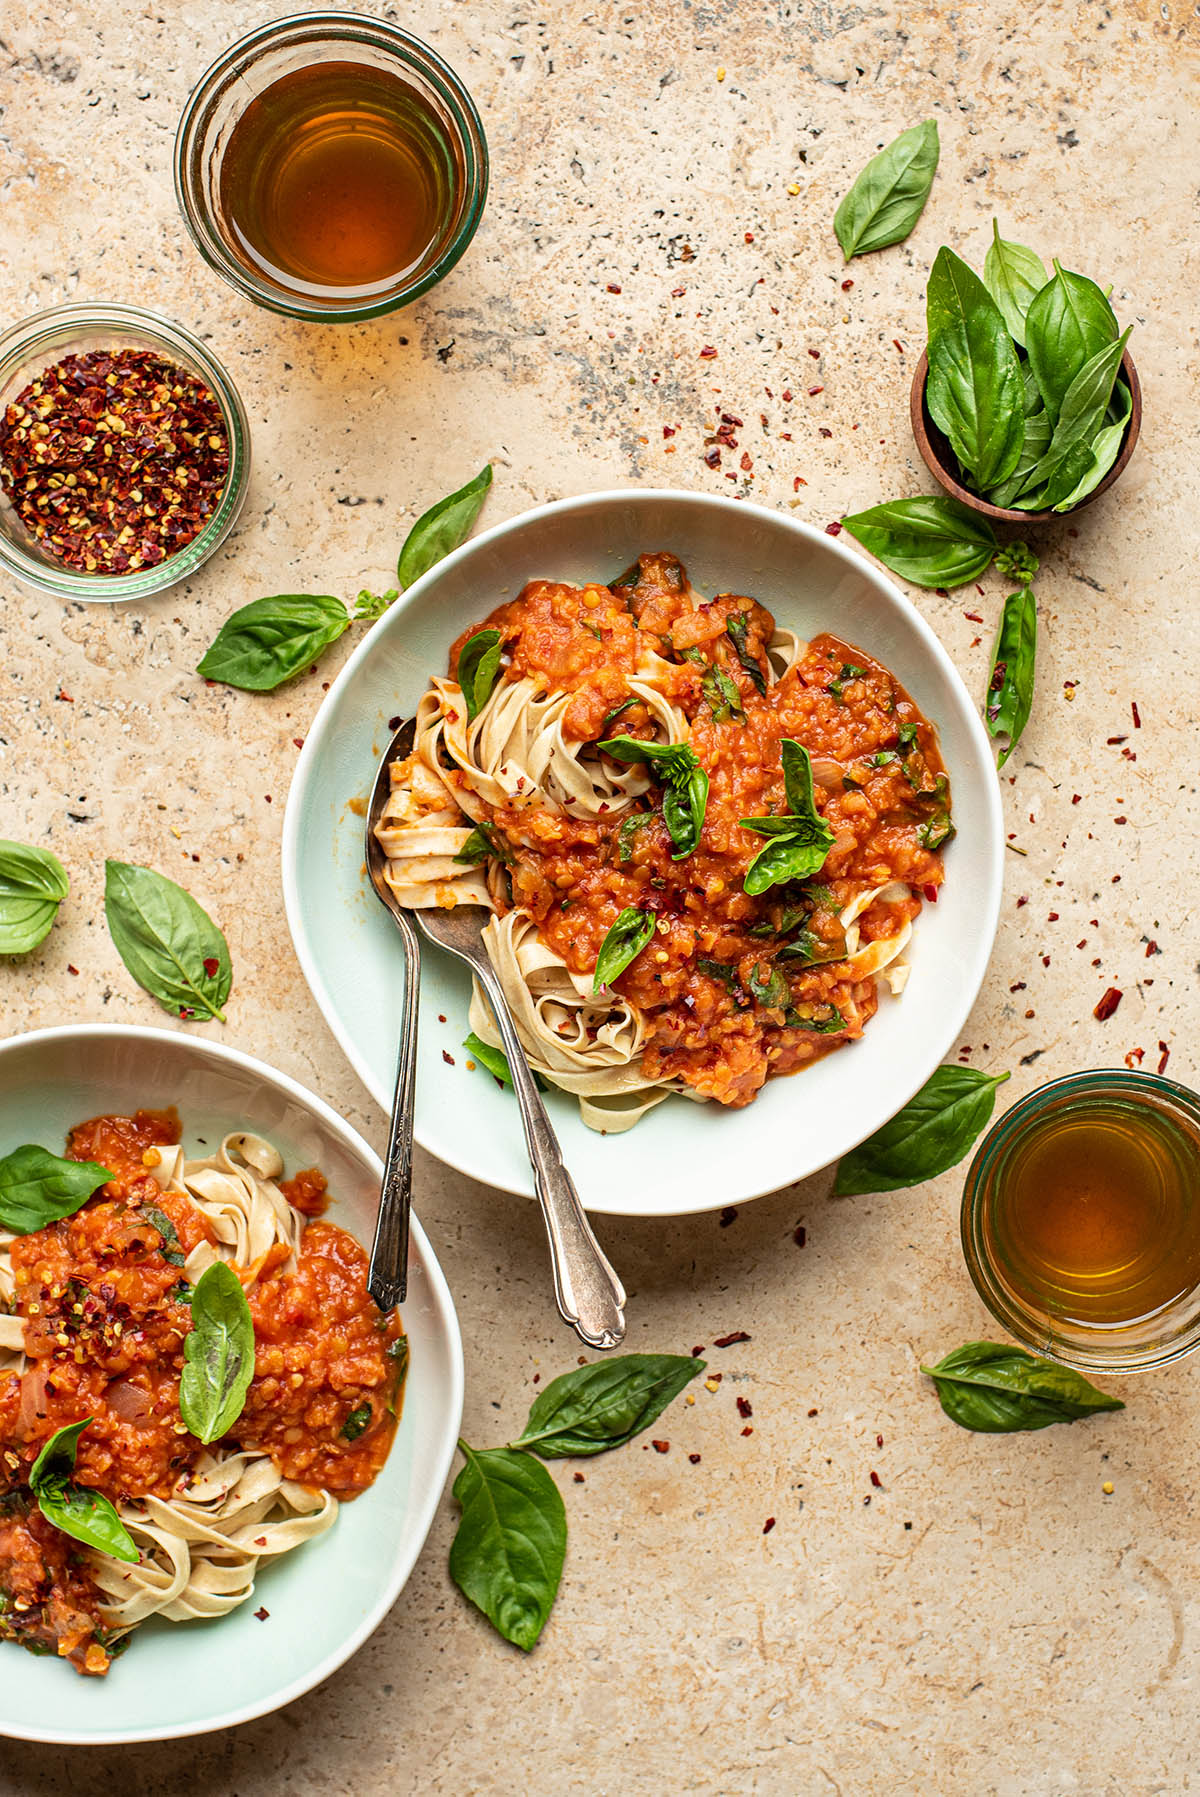 Two bowls of pasta topped with lentil tomato sauce and basil.